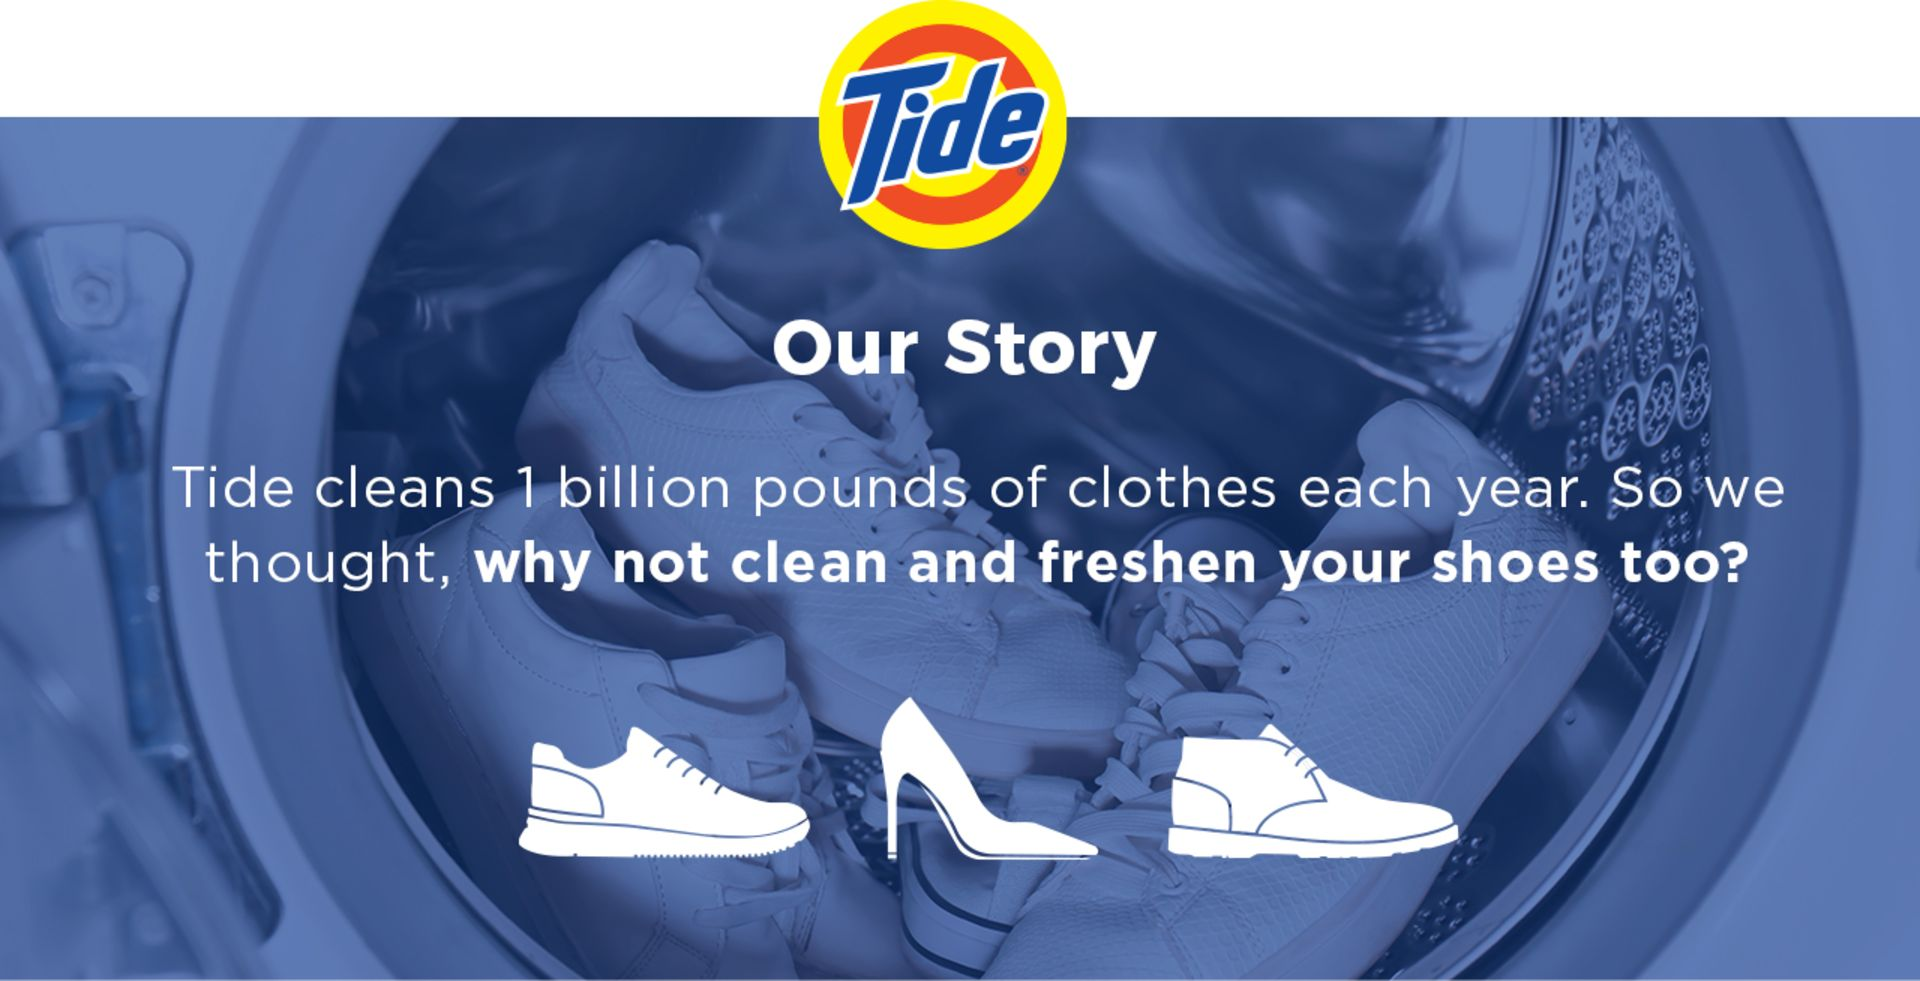 washing machine in the background with shoes being wash, blue overlay with text saying Our Story - Tide cleans 1 billion pounds of clothes each year. So we thought, why not clean and freshen your shoes too?